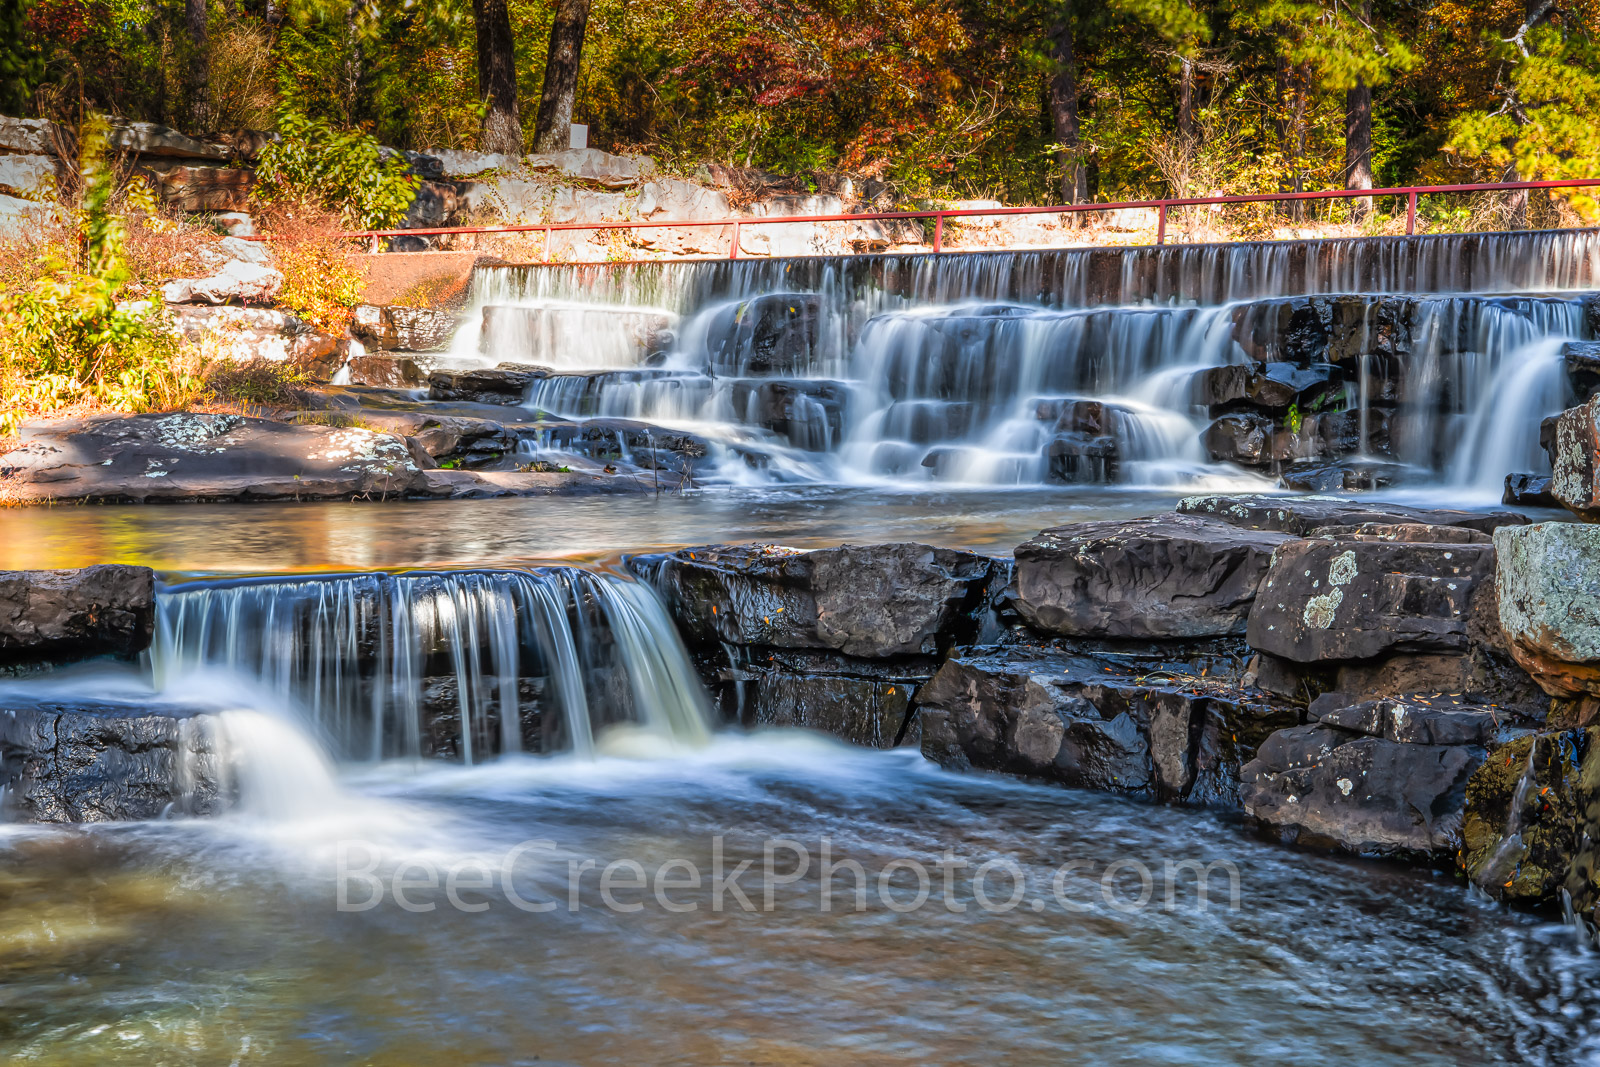 forest, fall, waterfall, downstream, lake bailey, dam, flow, water, rocks, cedar falls, national forest, arkansas, jean petit, fall colors, cascading,, photo